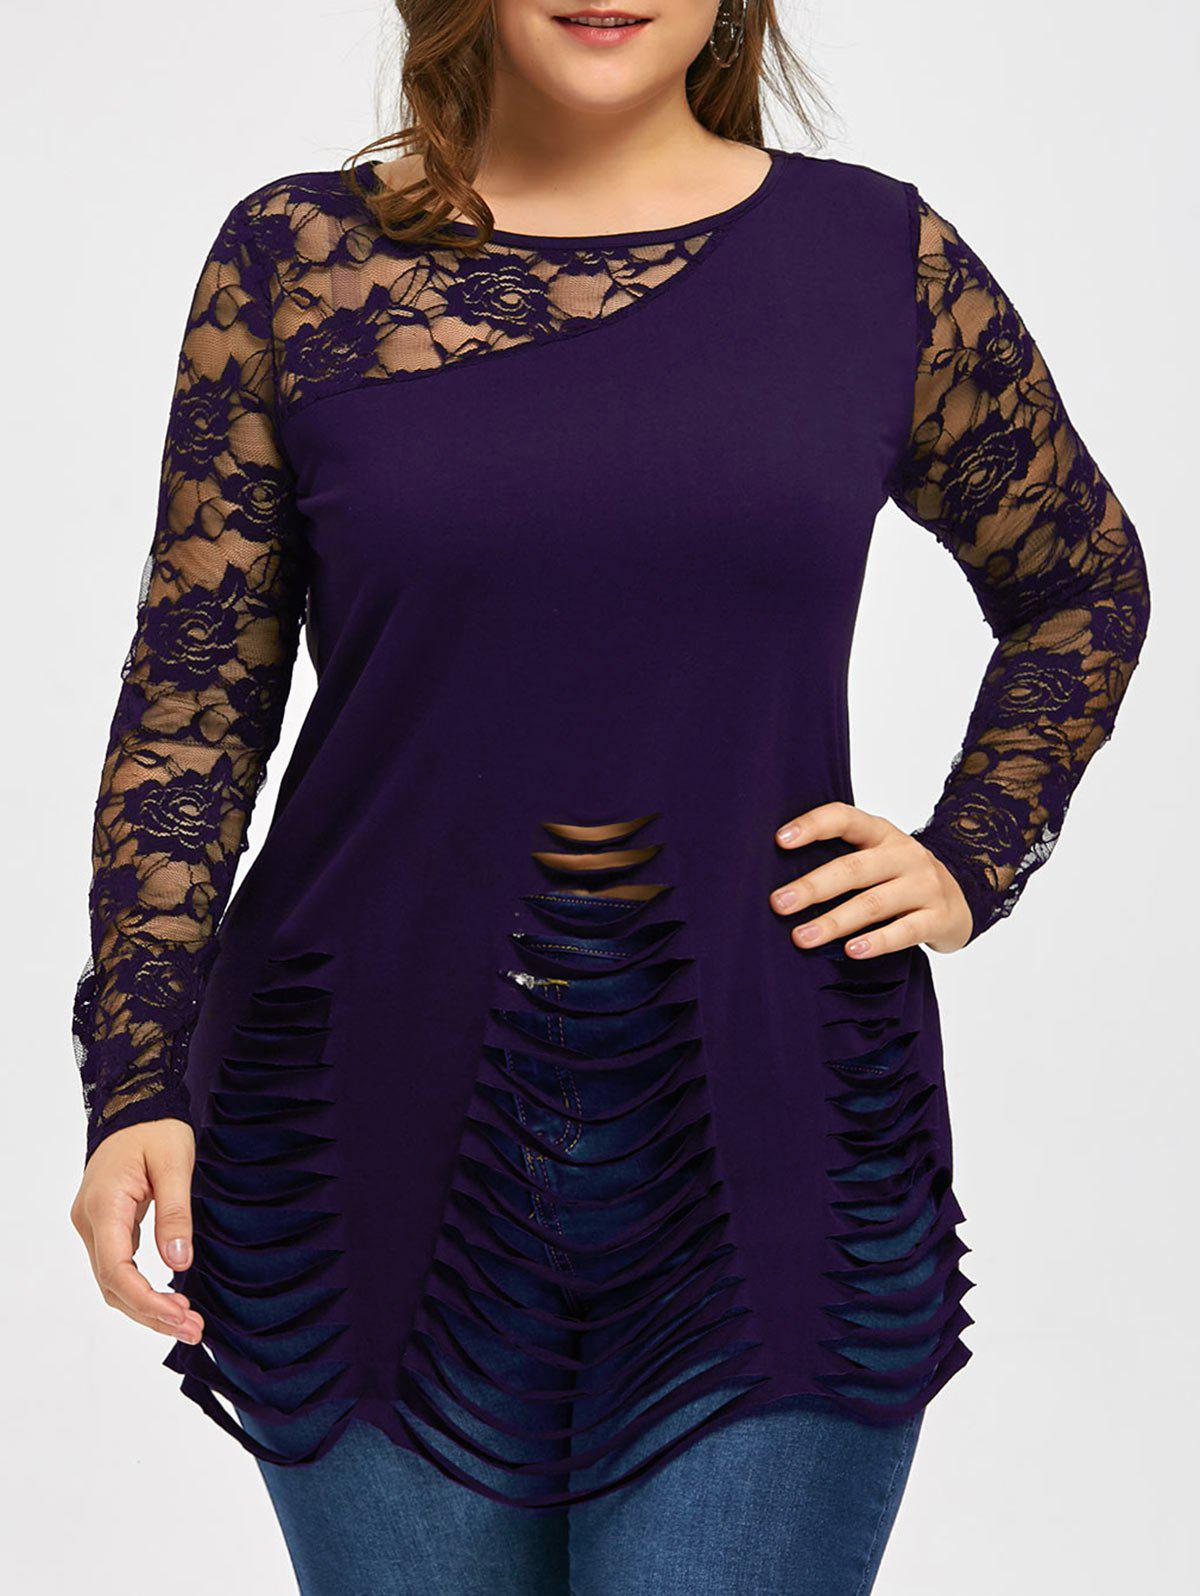 Plus Size Lace Insert Ripped TopWOMEN<br><br>Size: 5XL; Color: DEEP PURPLE; Material: Polyester,Spandex; Shirt Length: Long; Sleeve Length: Full; Collar: Round Neck; Style: Fashion; Season: Fall,Spring,Summer; Embellishment: Lace; Pattern Type: Floral; Weight: 0.2300kg; Package Contents: 1 x Top;